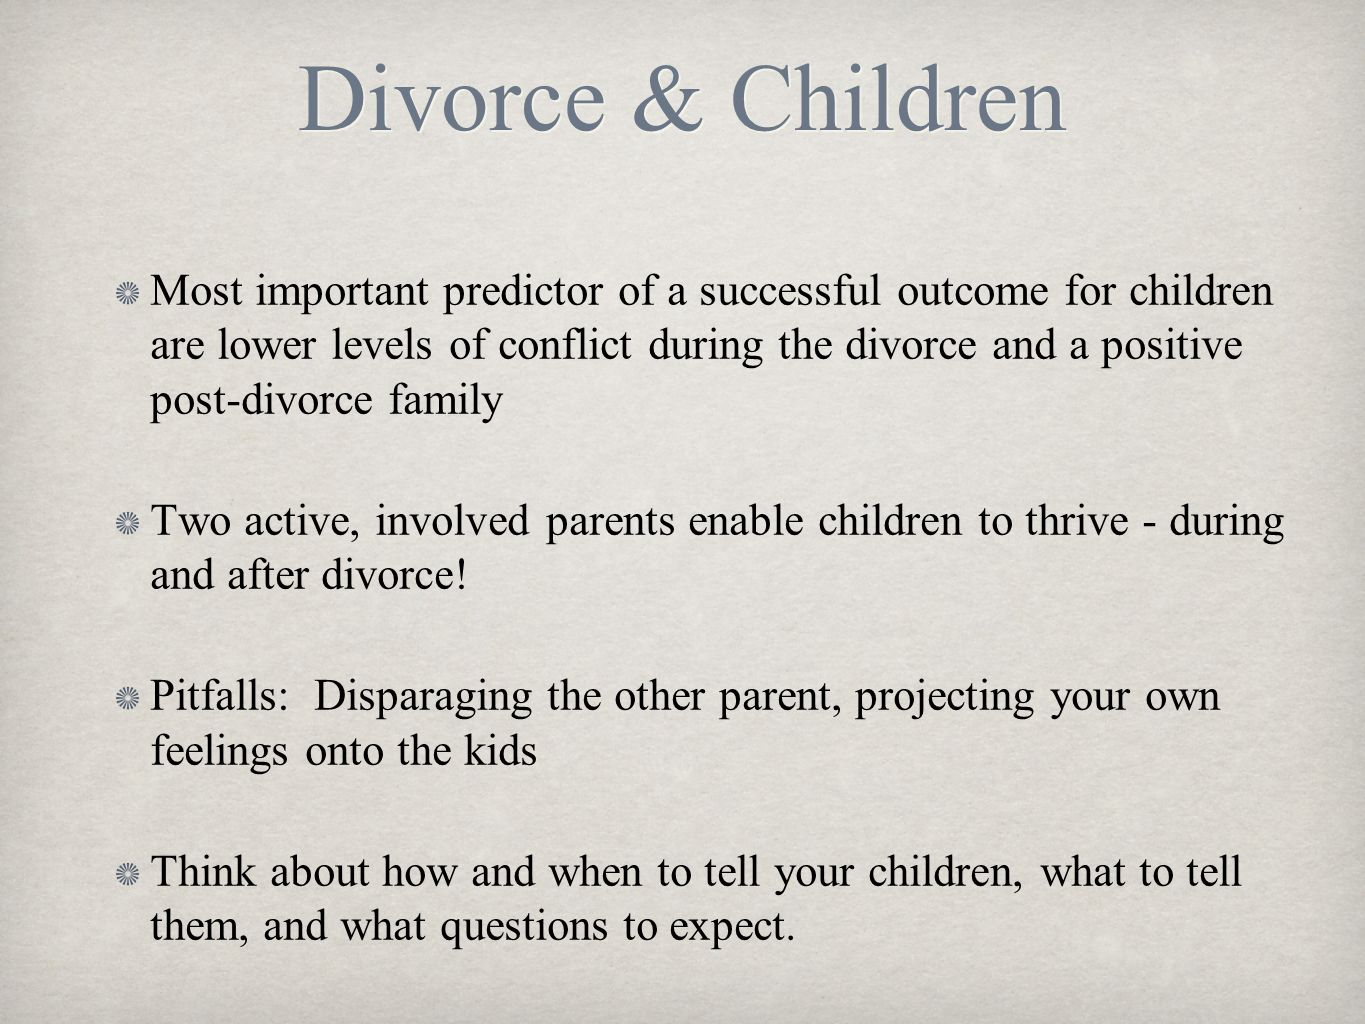 Divorce & Children